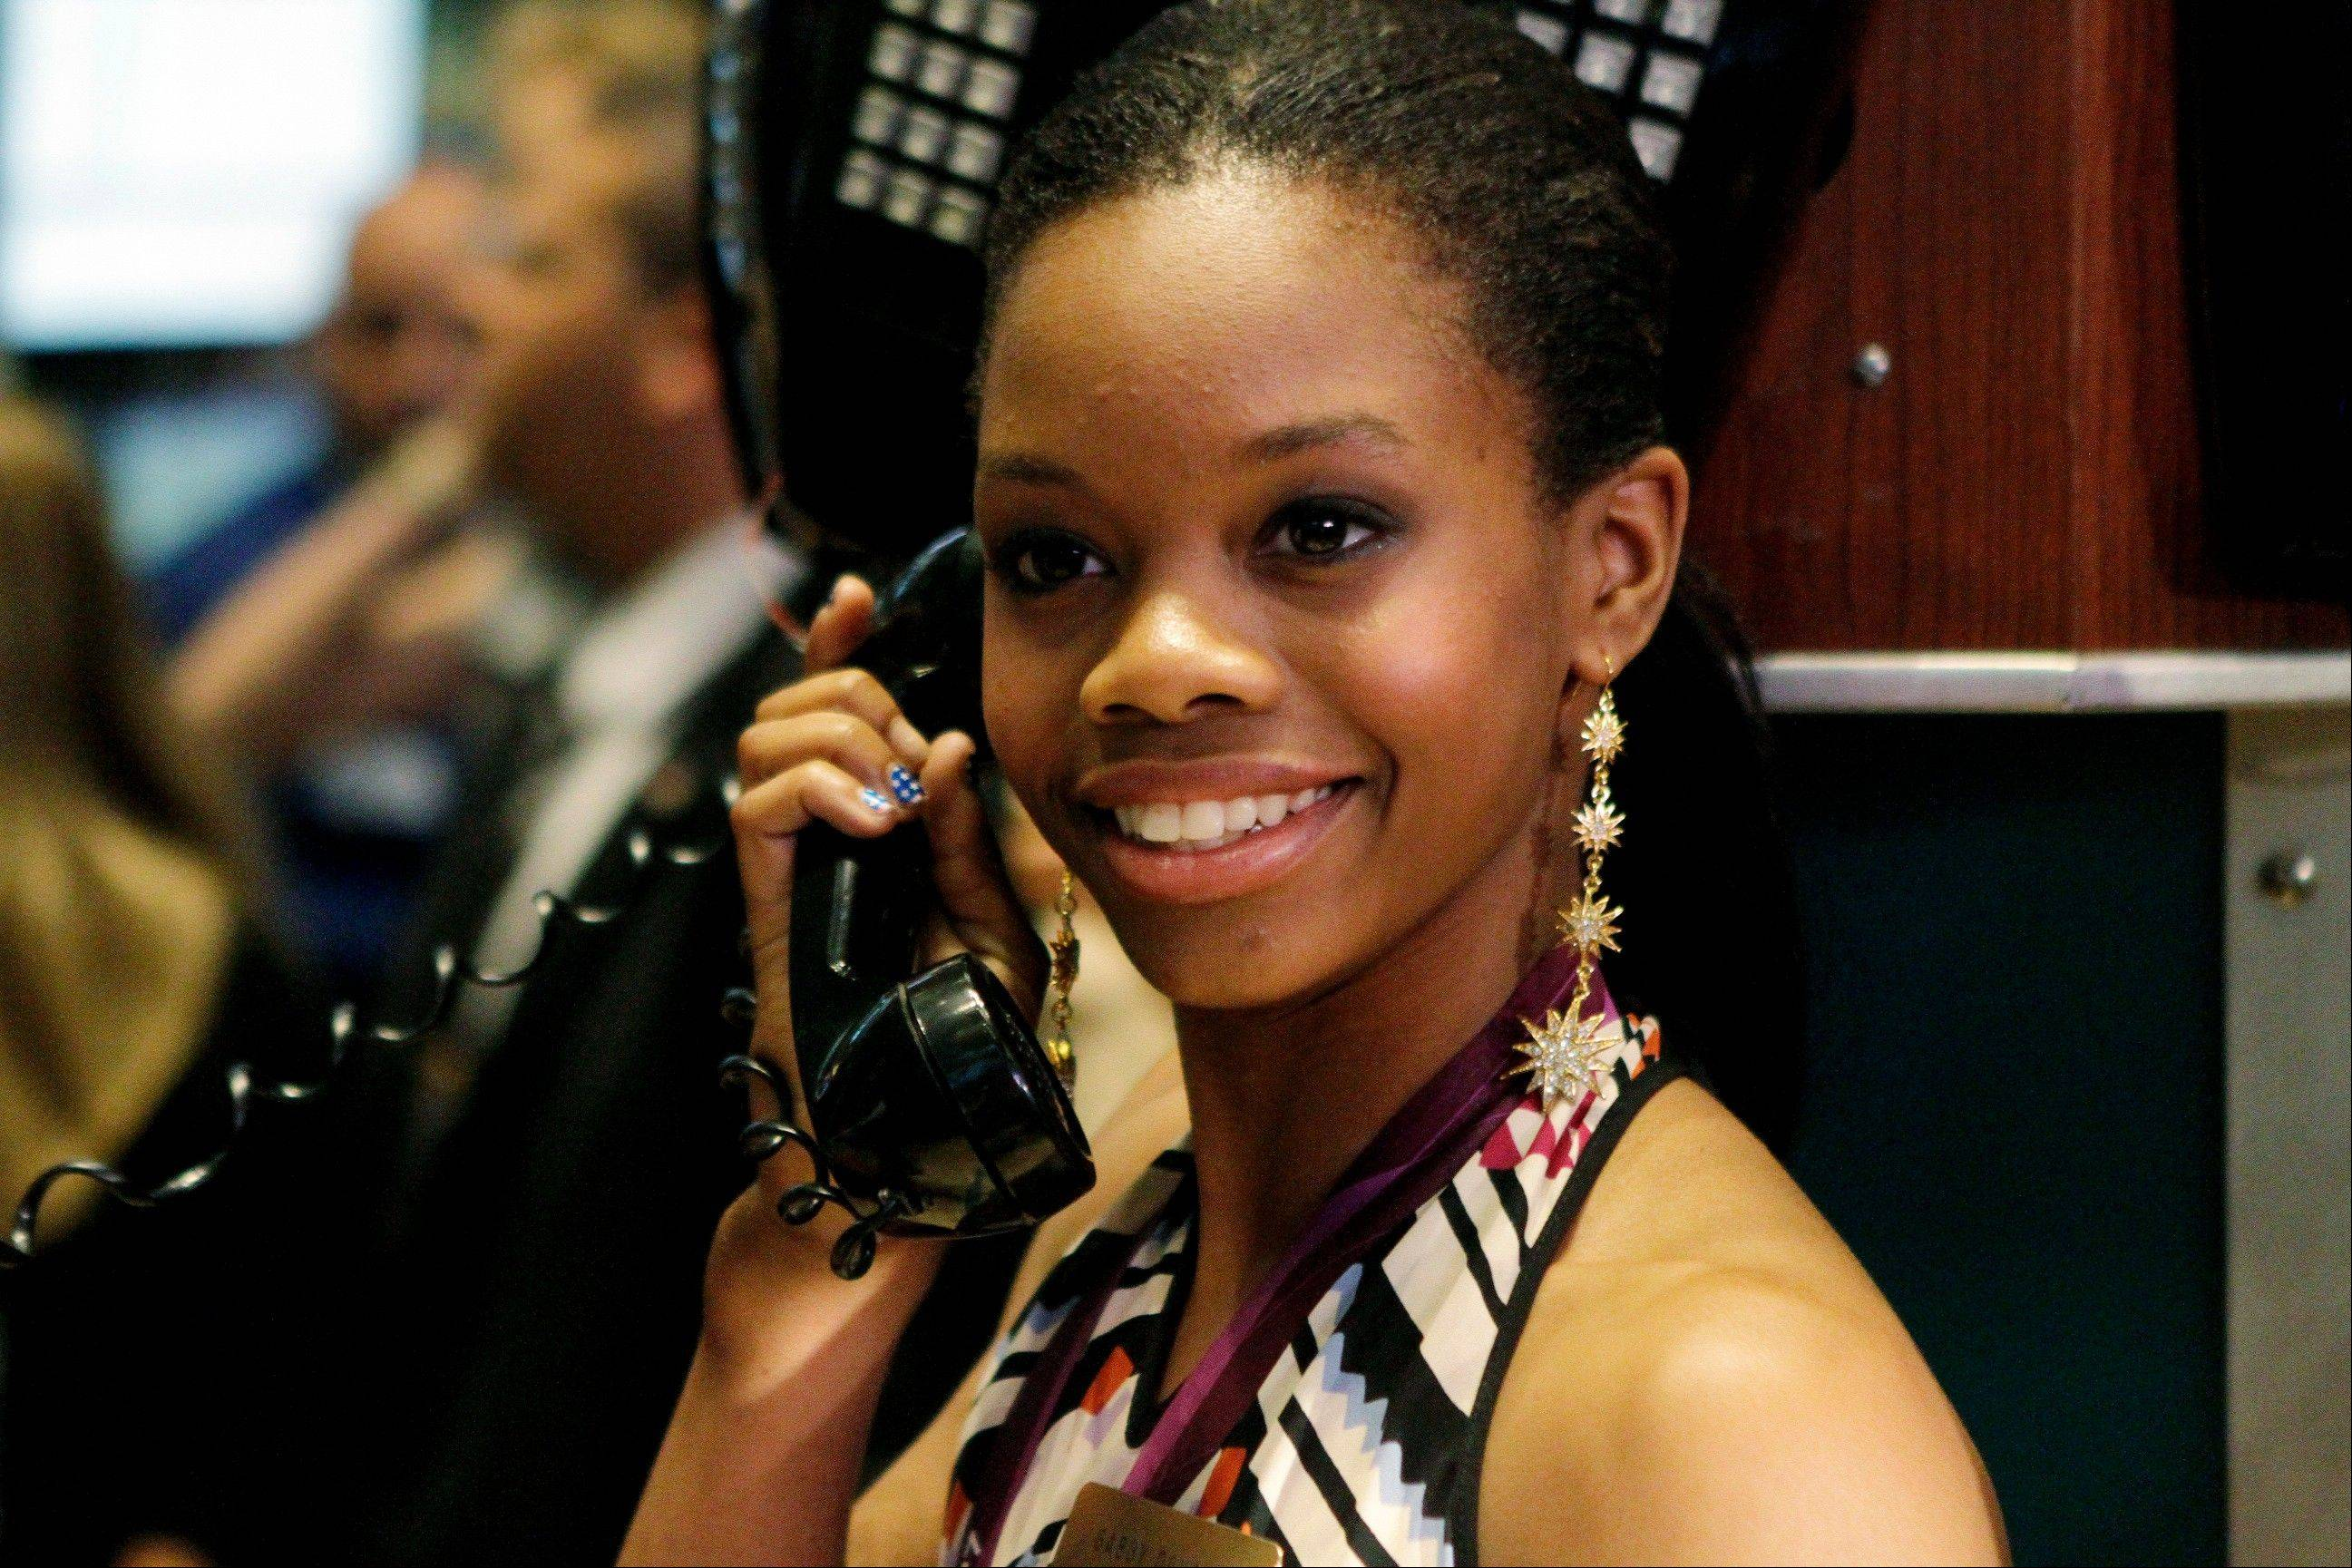 Olympic champion gymnast Gabby Douglas pretends to talk on the phone while posing for photos on the floor of the New York Stock Exchange, Tuesday, Aug. 14, 2012, in New York.